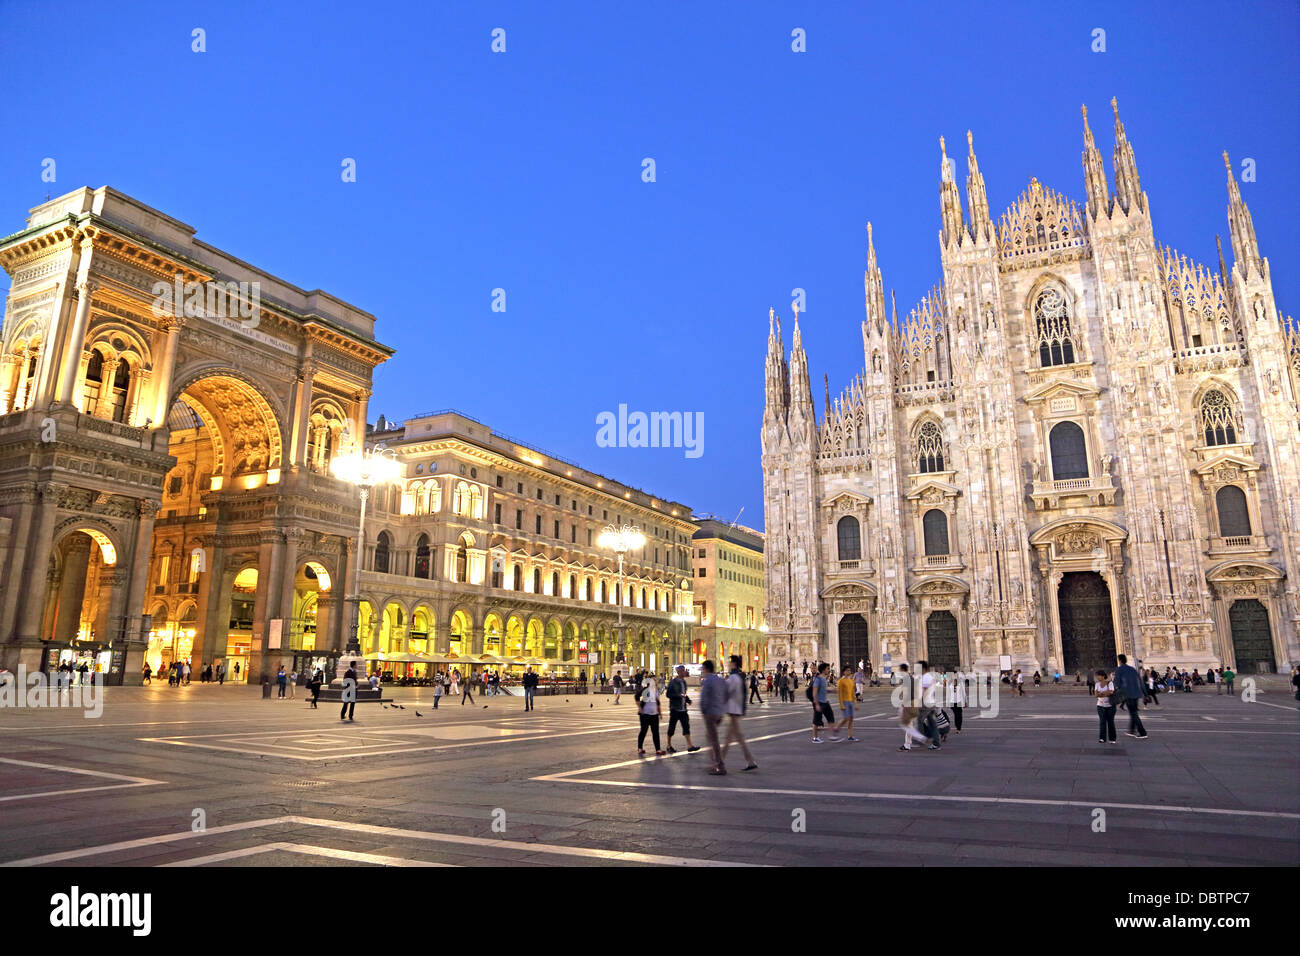 Piazza del Duomo and the front entrances of the Duomo and Galleria Vittorio Emanuele in Milan Italy - Stock Image